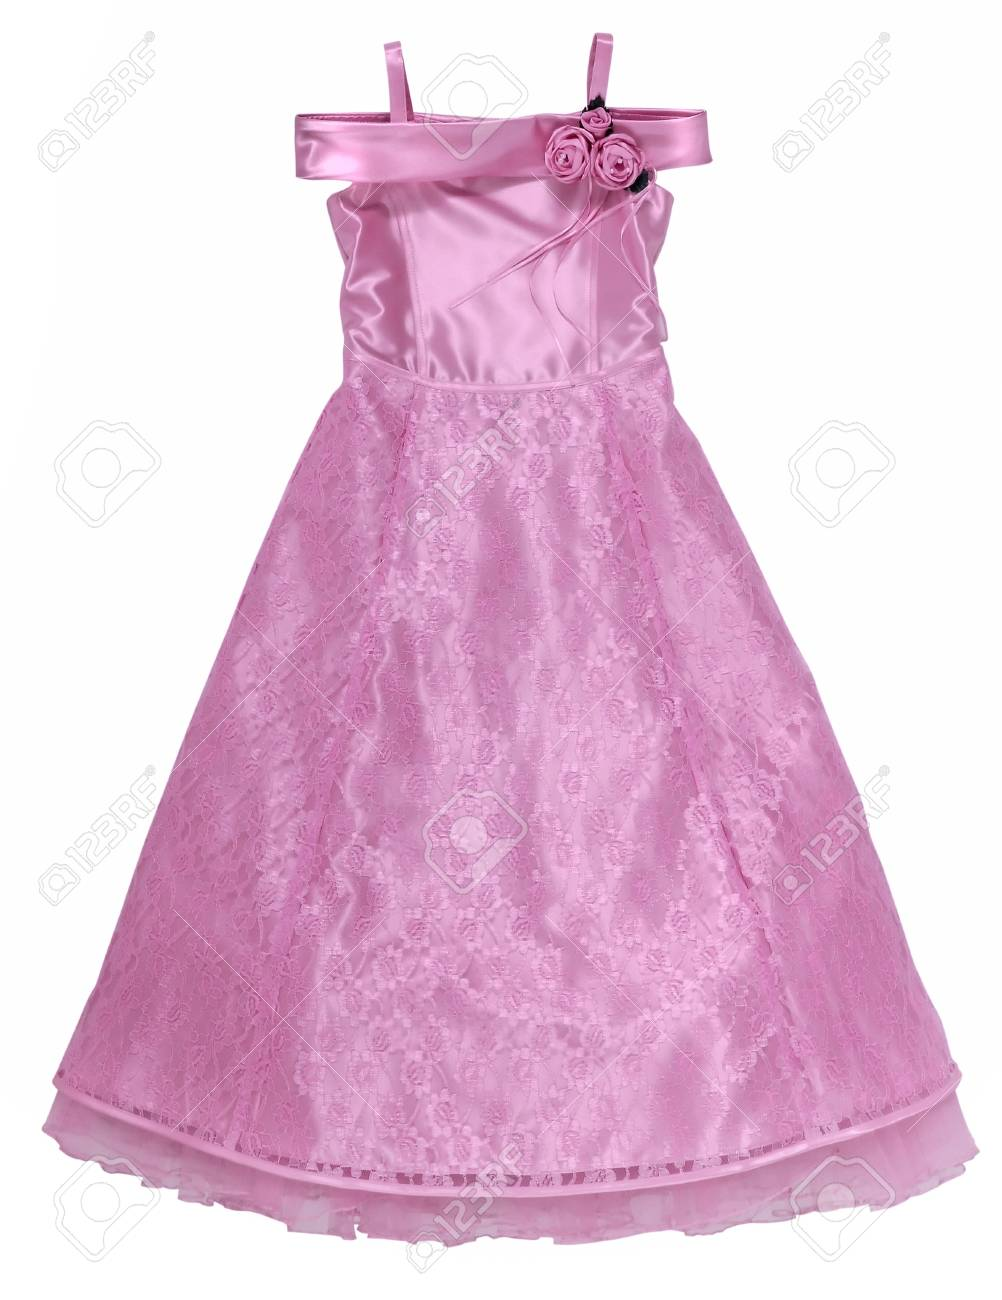 pink dress with roses Stock Photo - 13008181